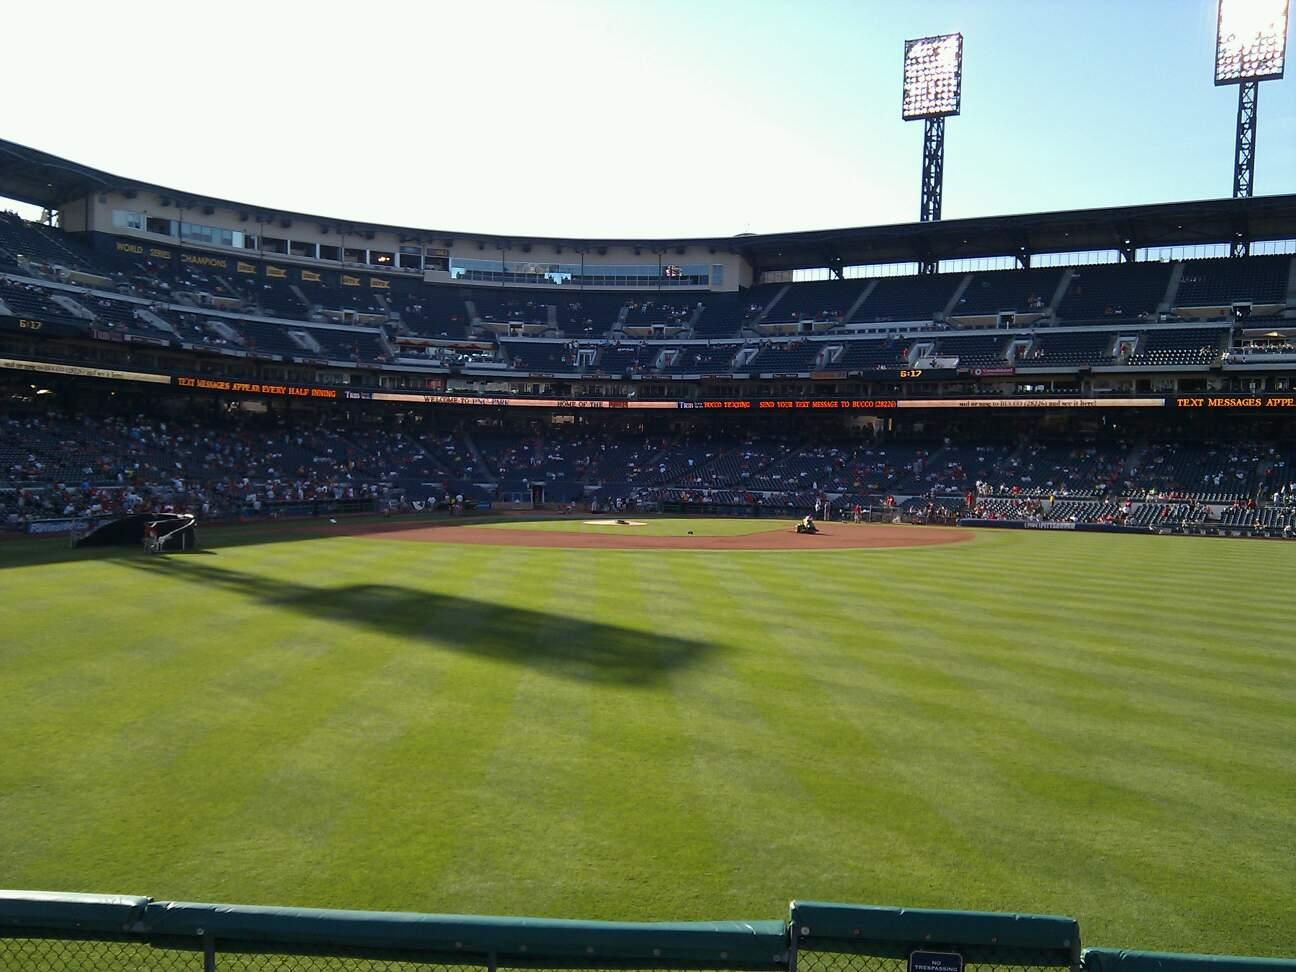 PNC Park Section 141 Row f Seat 1